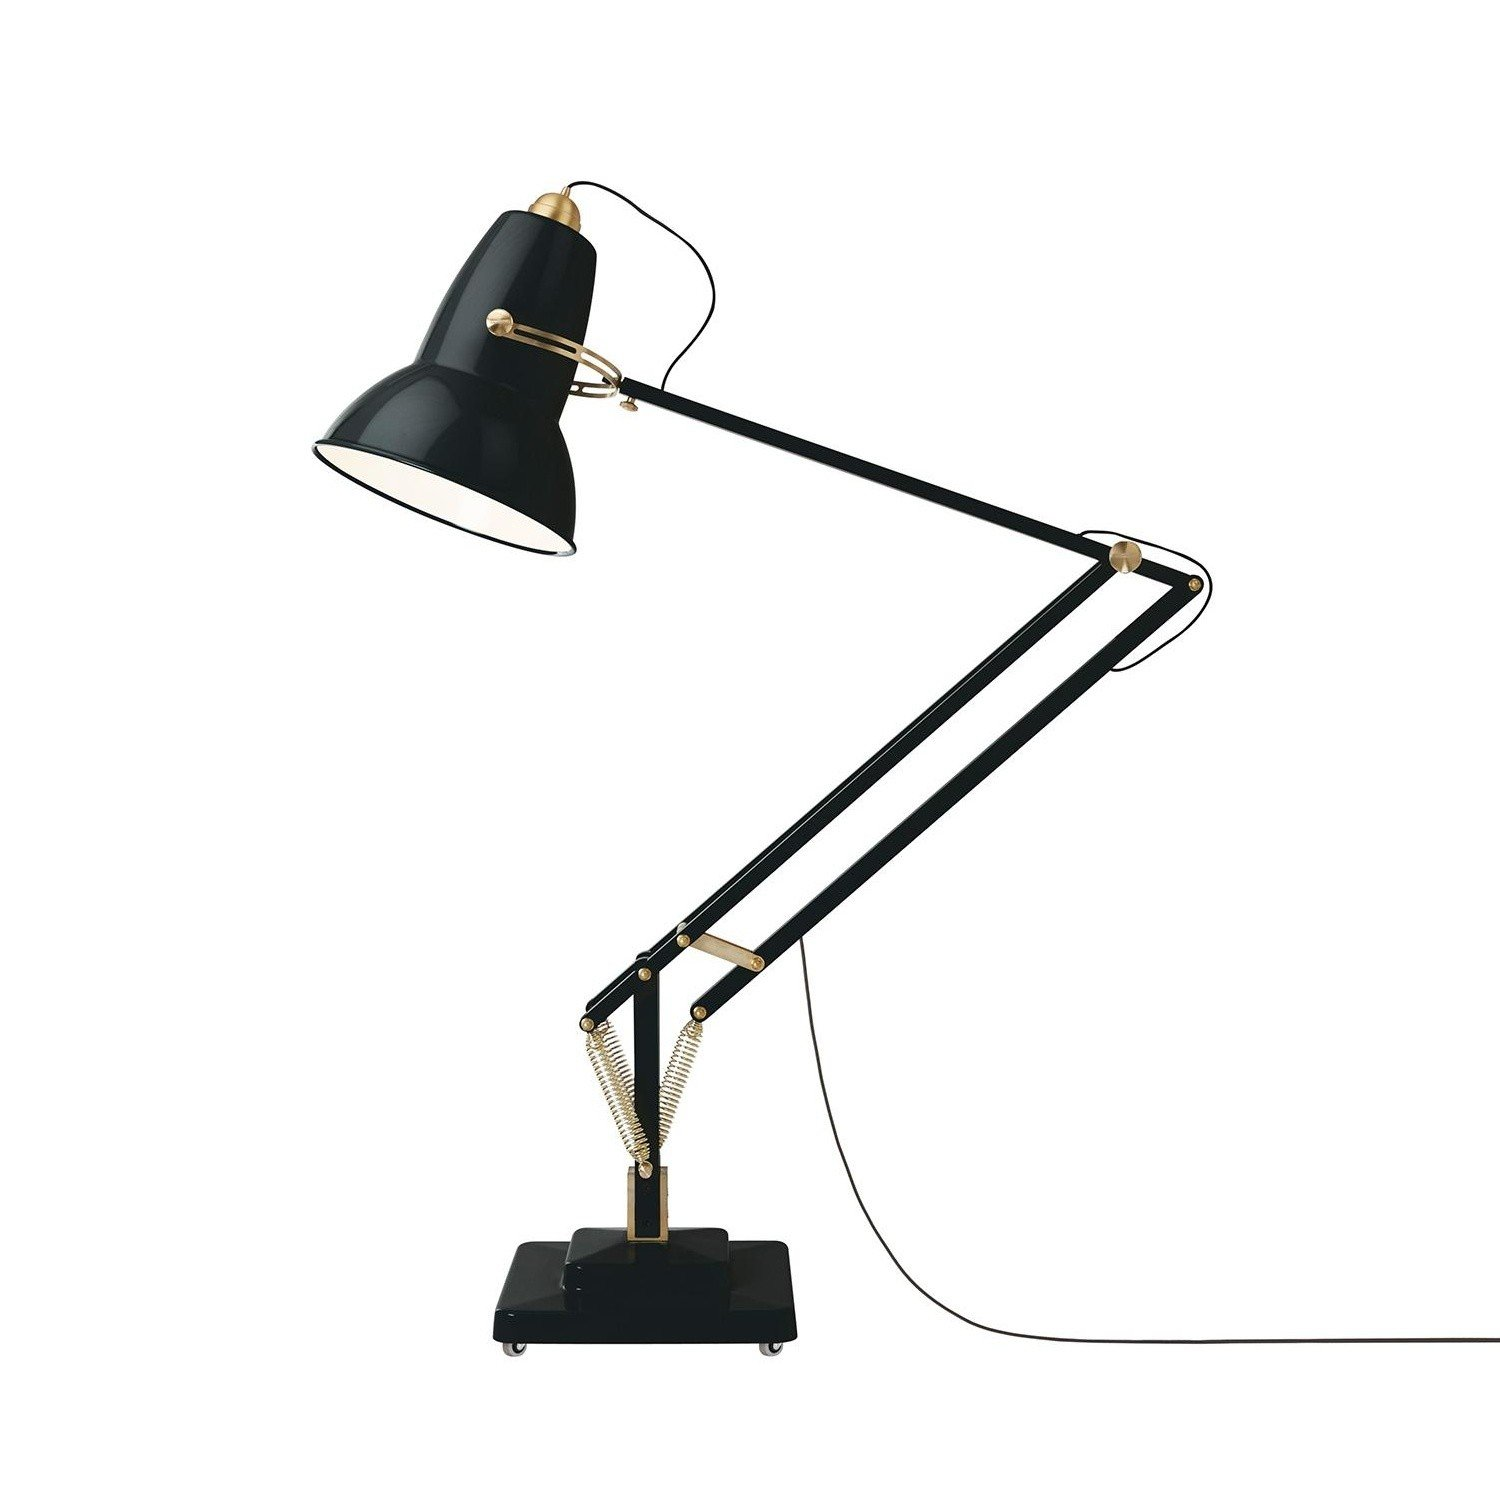 industrial in lamp vintage chic retro cottingham the lamps img handles spotlight more blog anglepoise